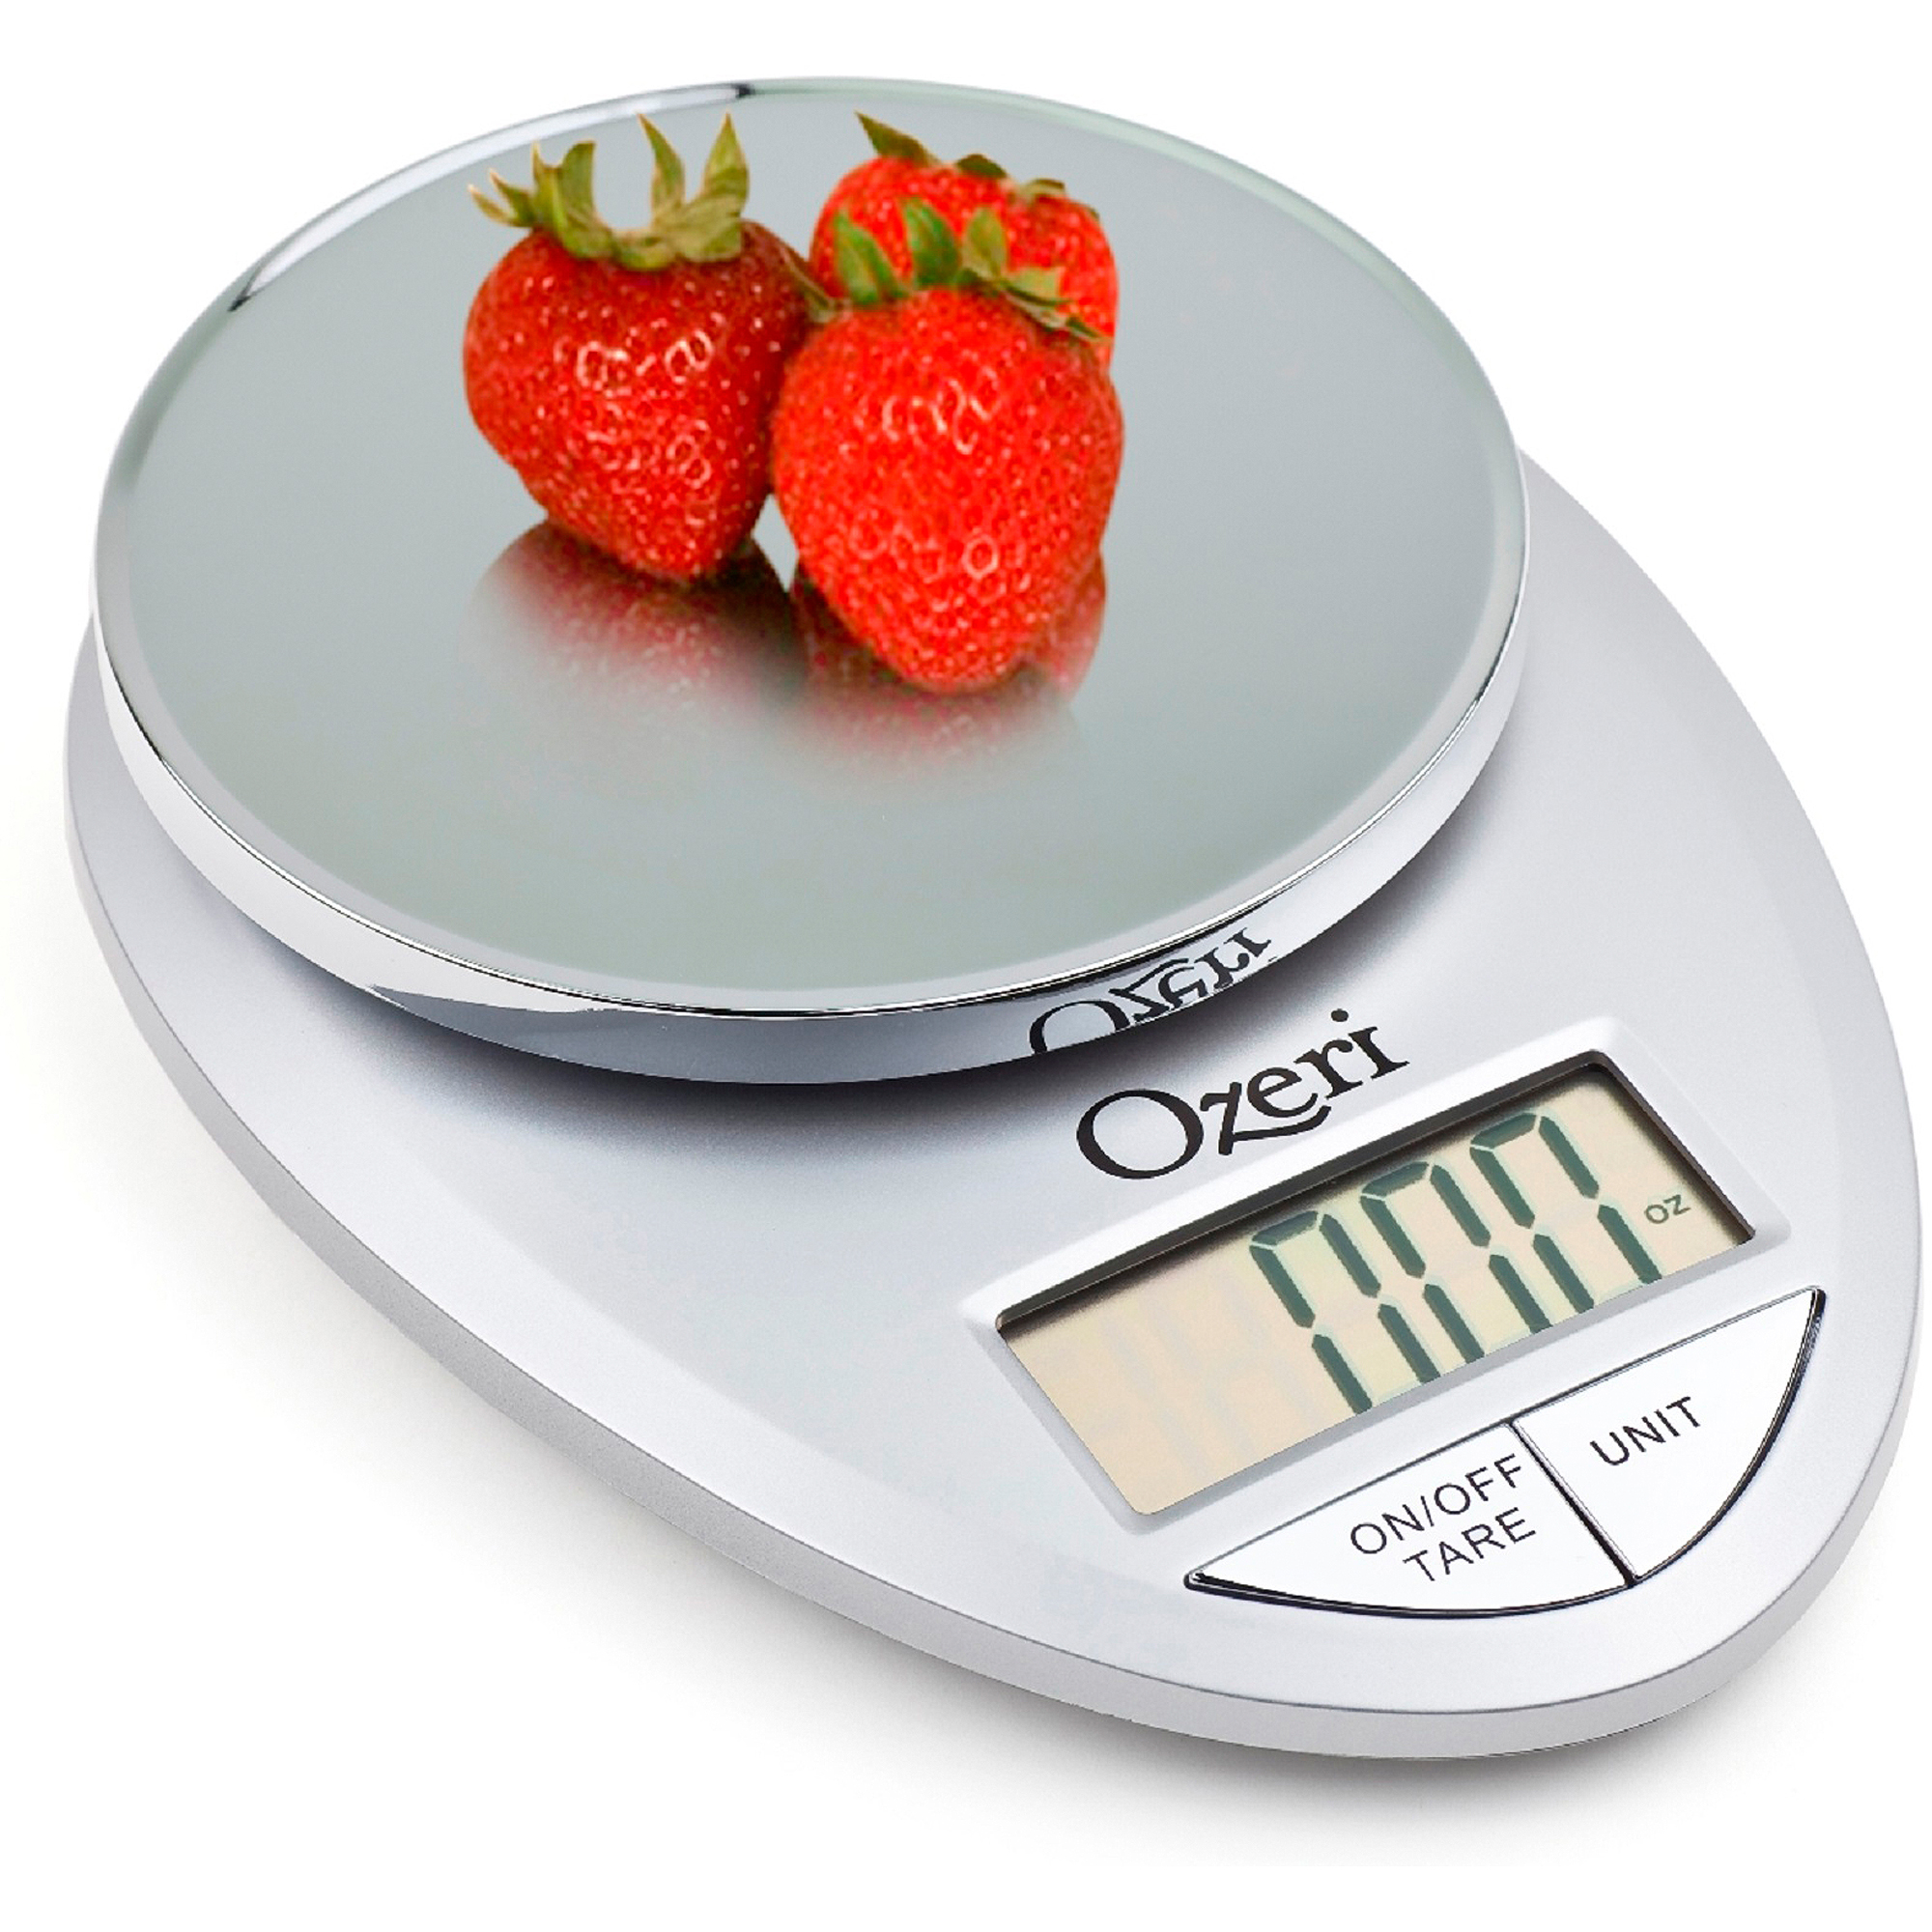 Ozeri Pro Digital Kitchen Food Scale, 1g to 12 lbs Capacity, Chrome